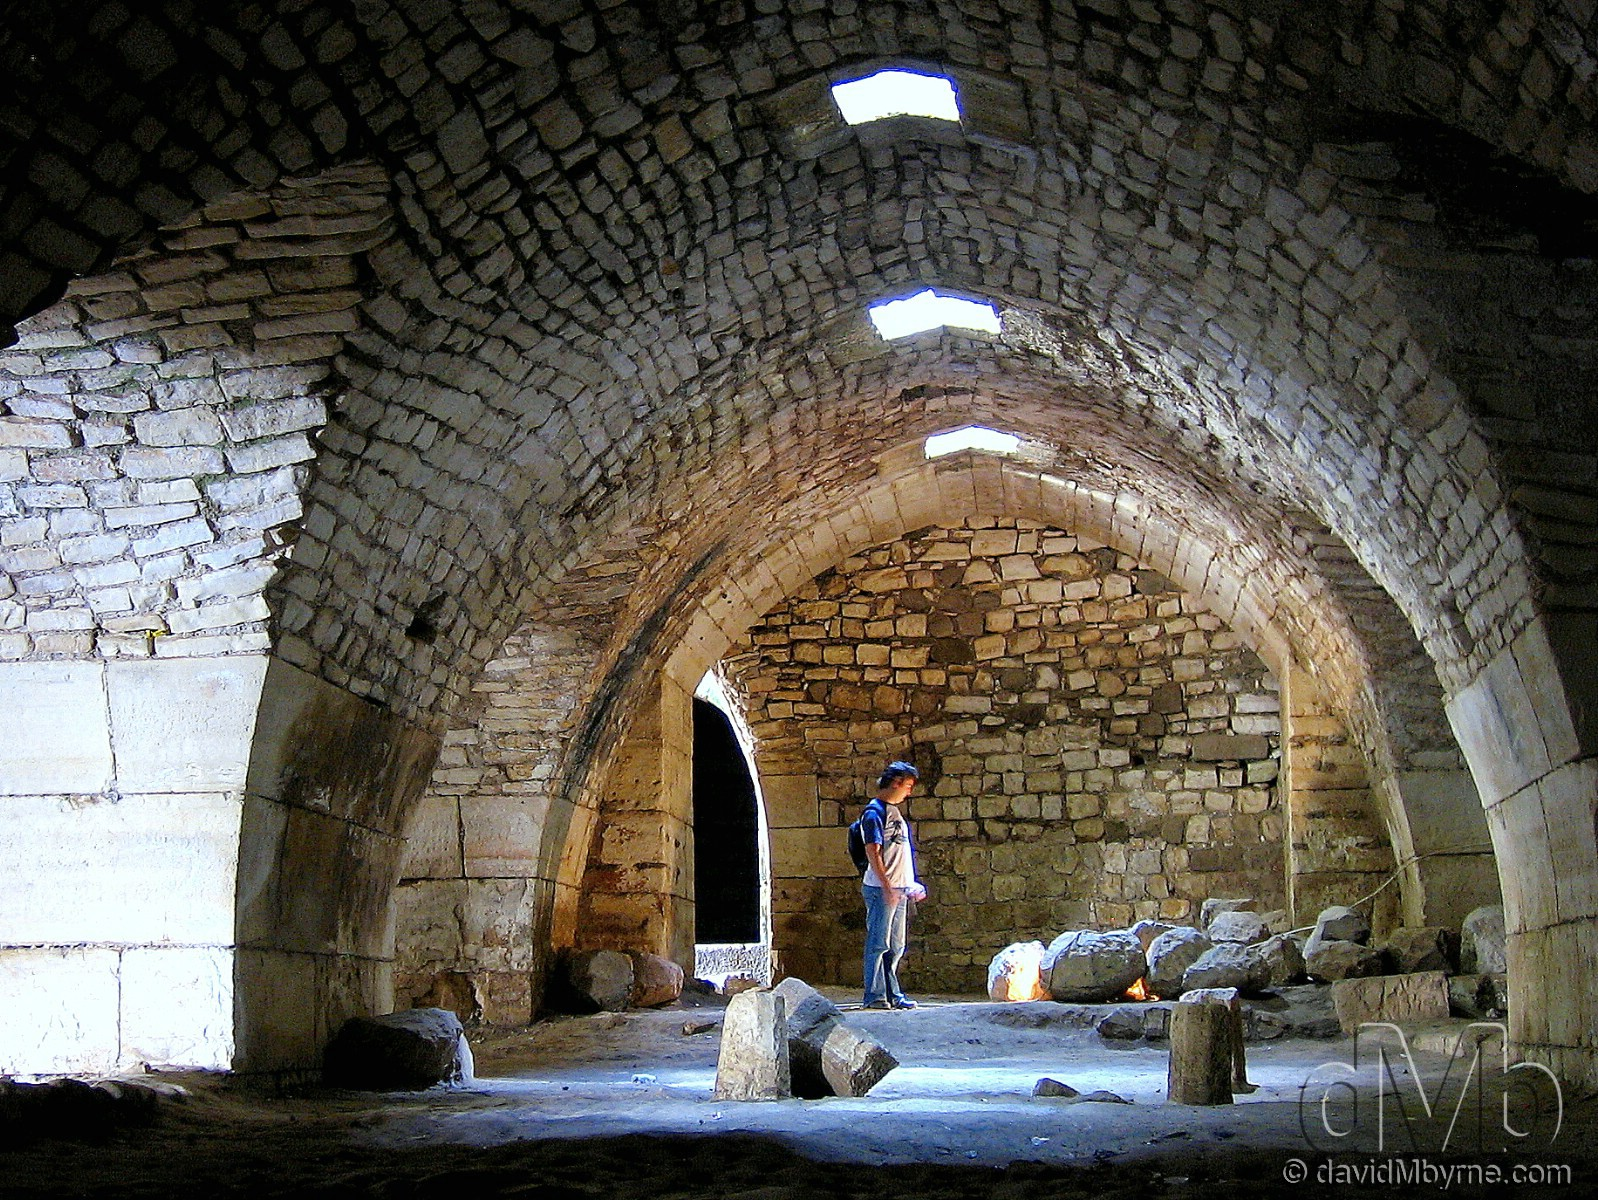 Inside the corridors of the Crac des Chevaliers, Syria. May 7th, 2008.